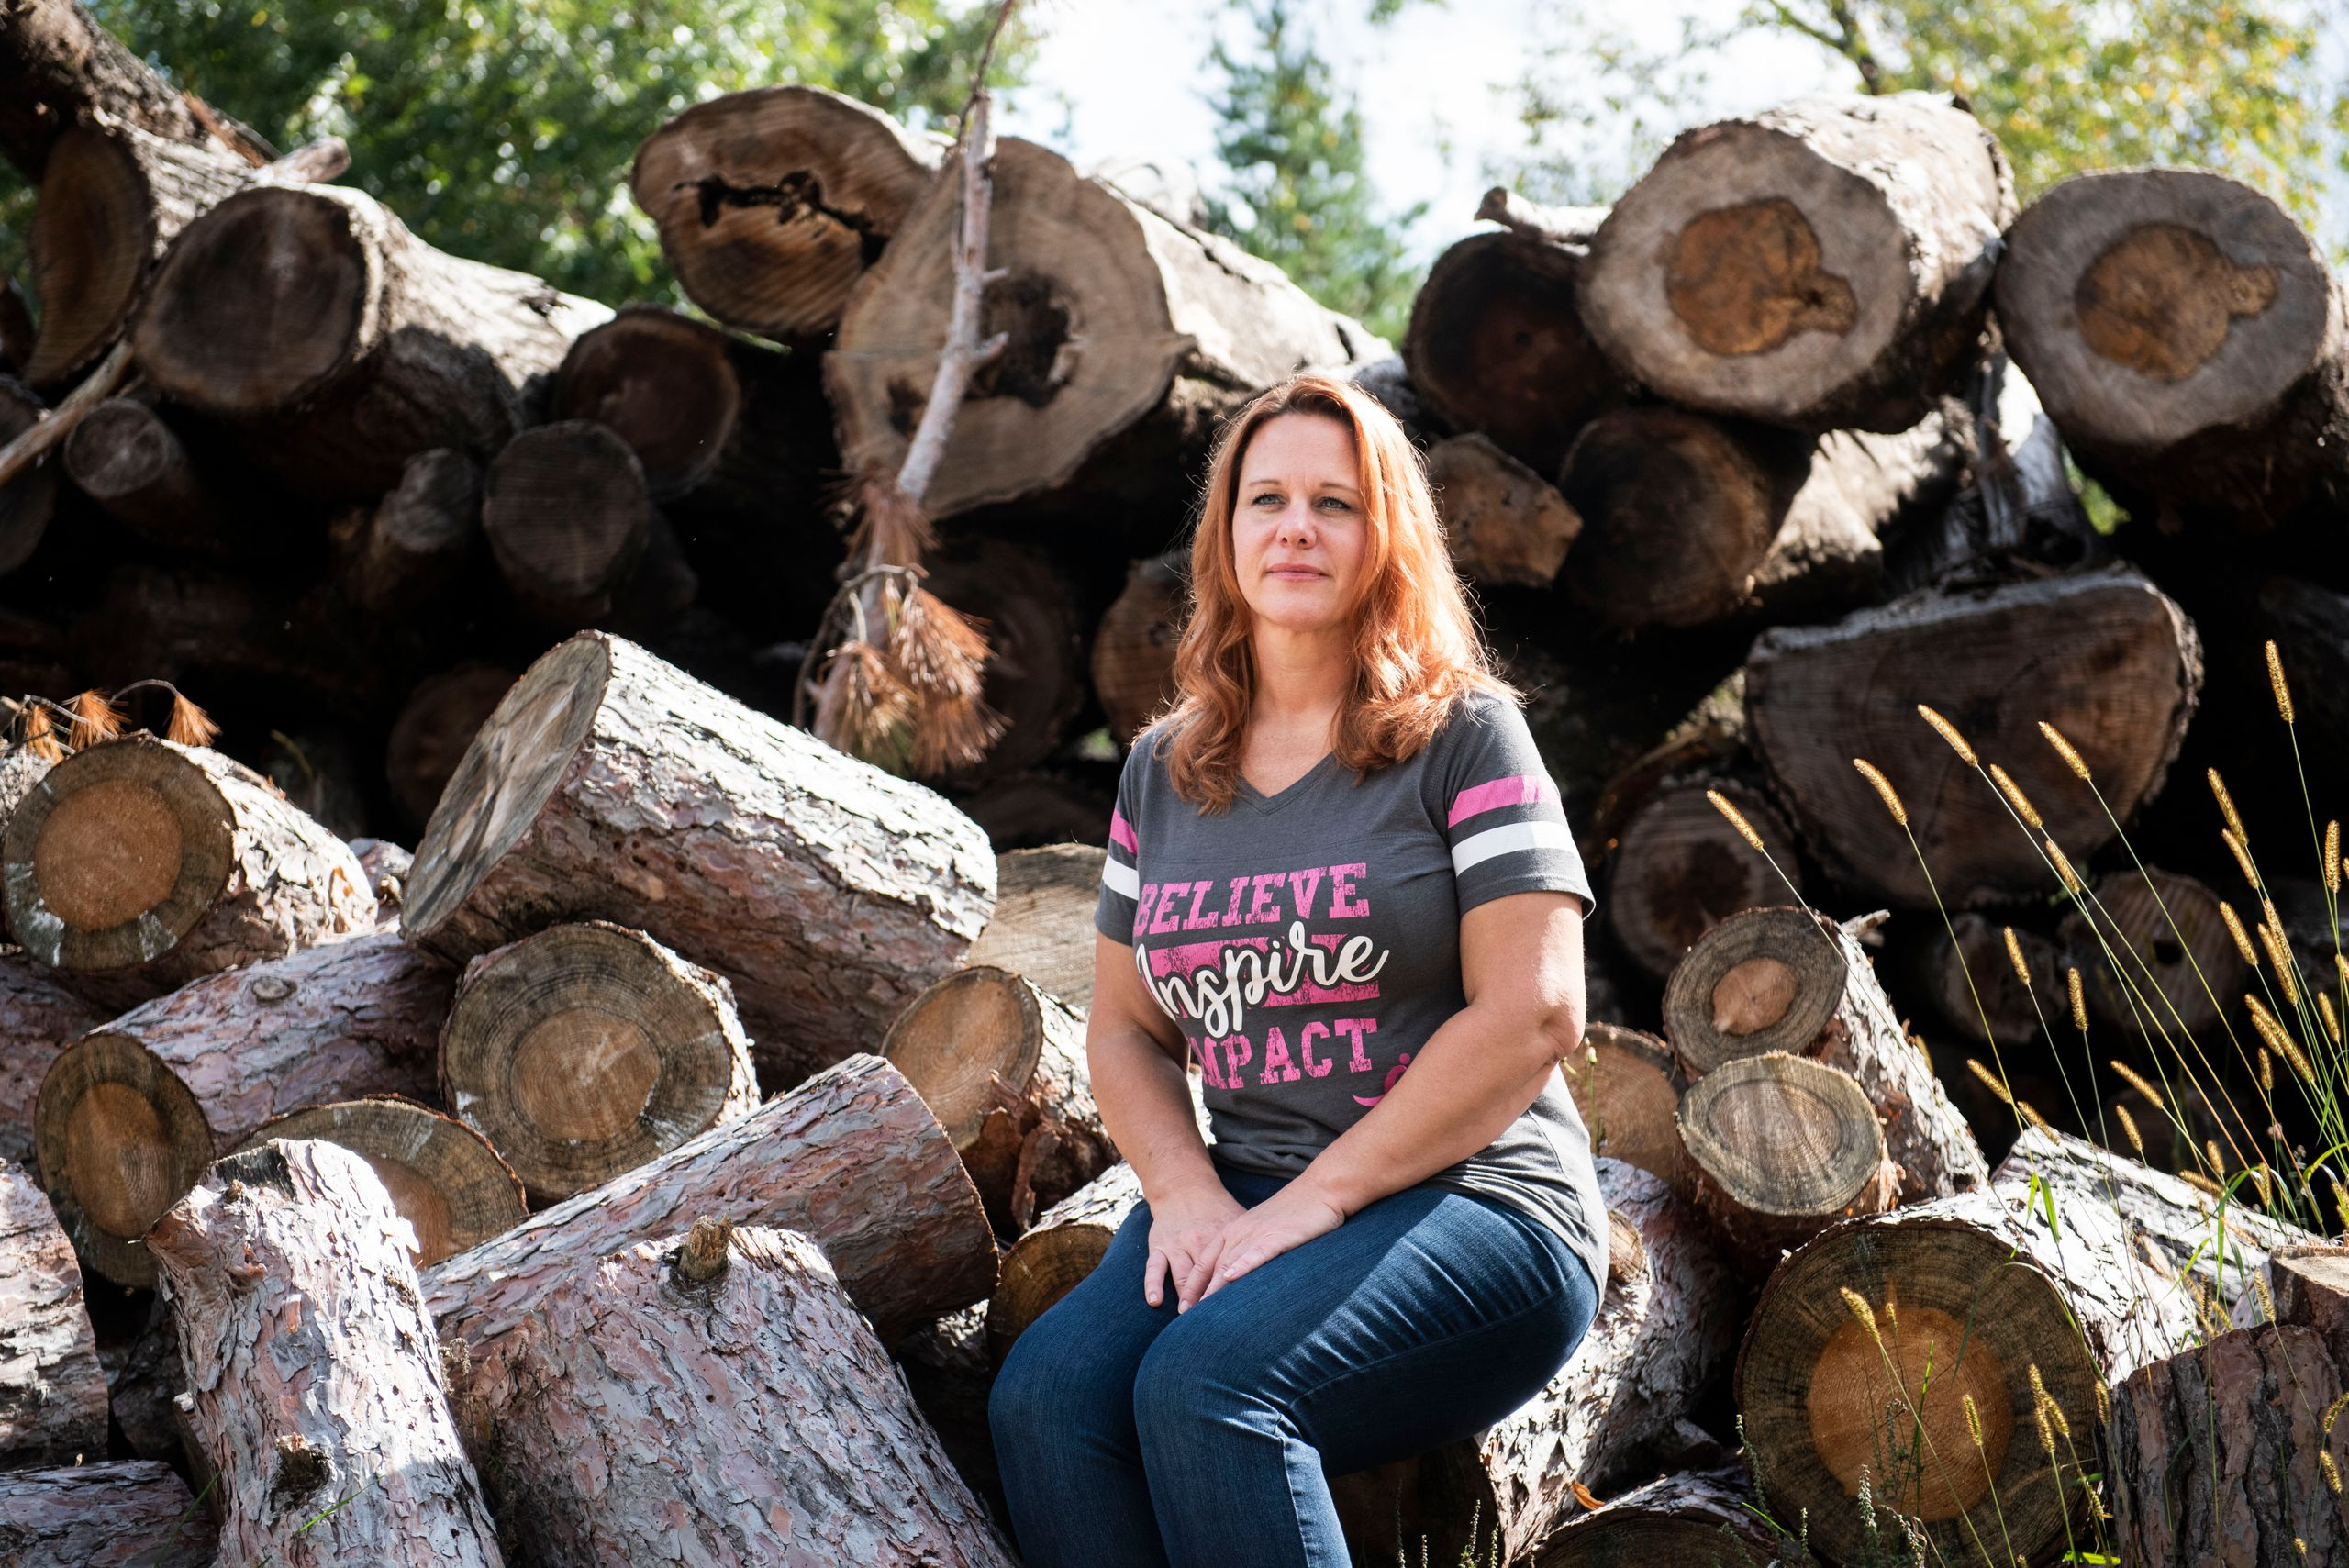 Criste Sullivan-Greening, an active member of Protect Wood County, at her home in Saratoga, Wisconsin, on Sept. 20, 2019.